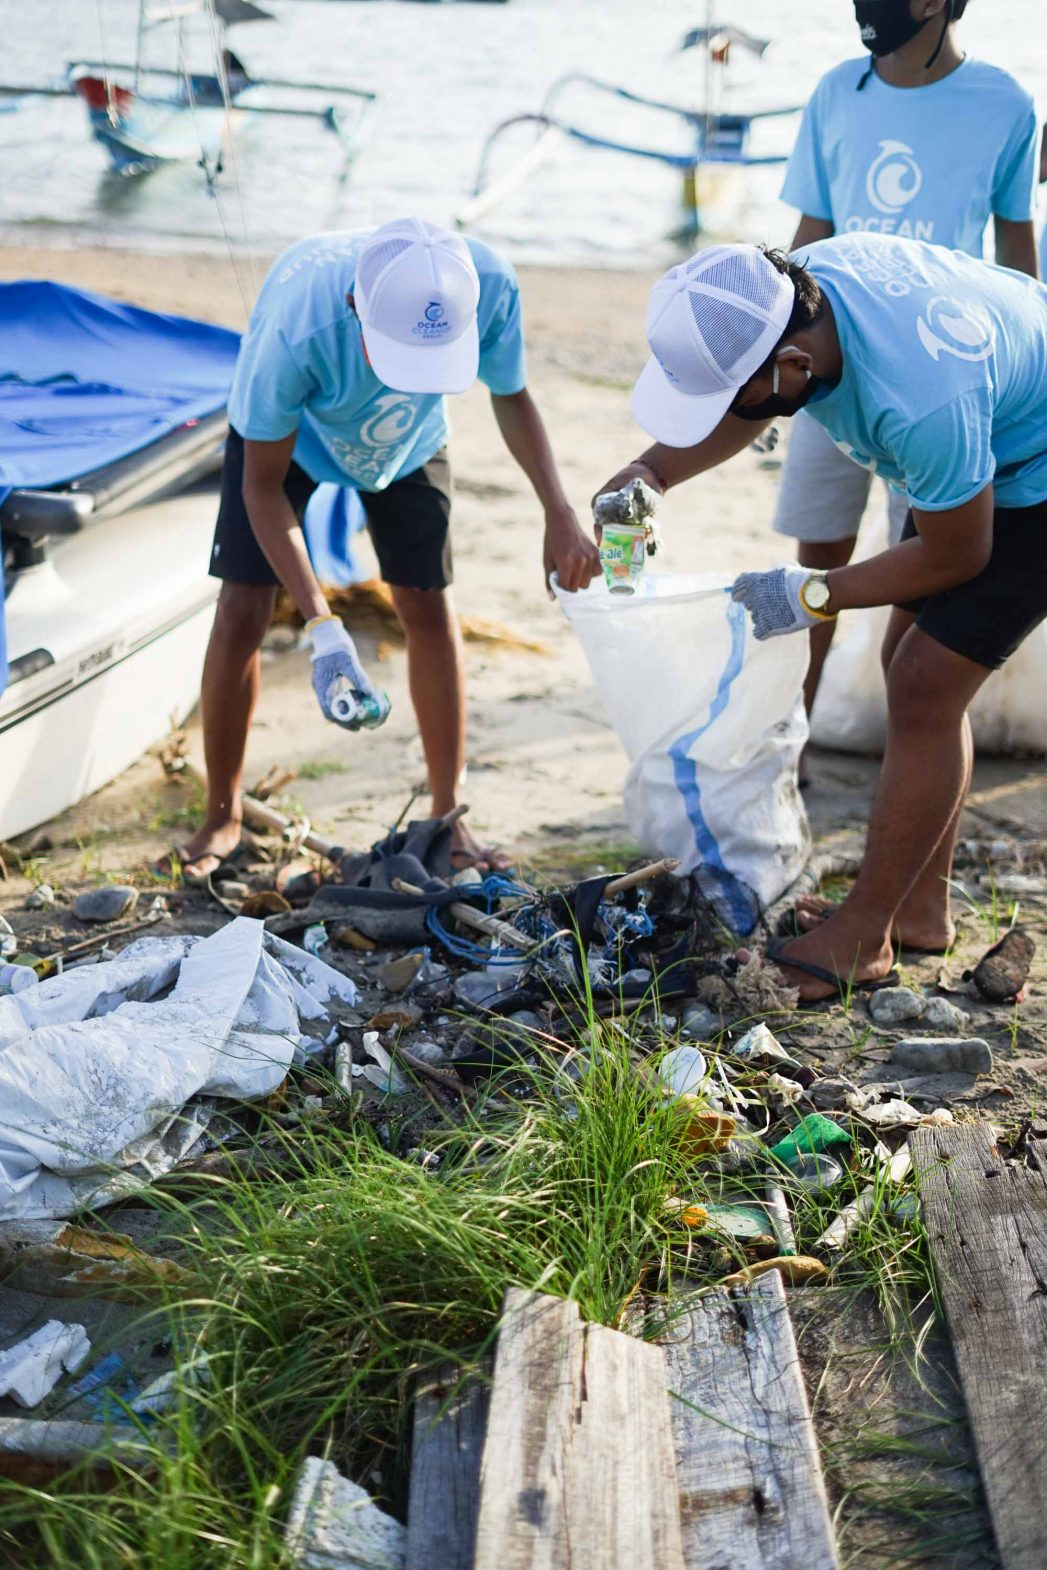 People collect plastic waste from a beach